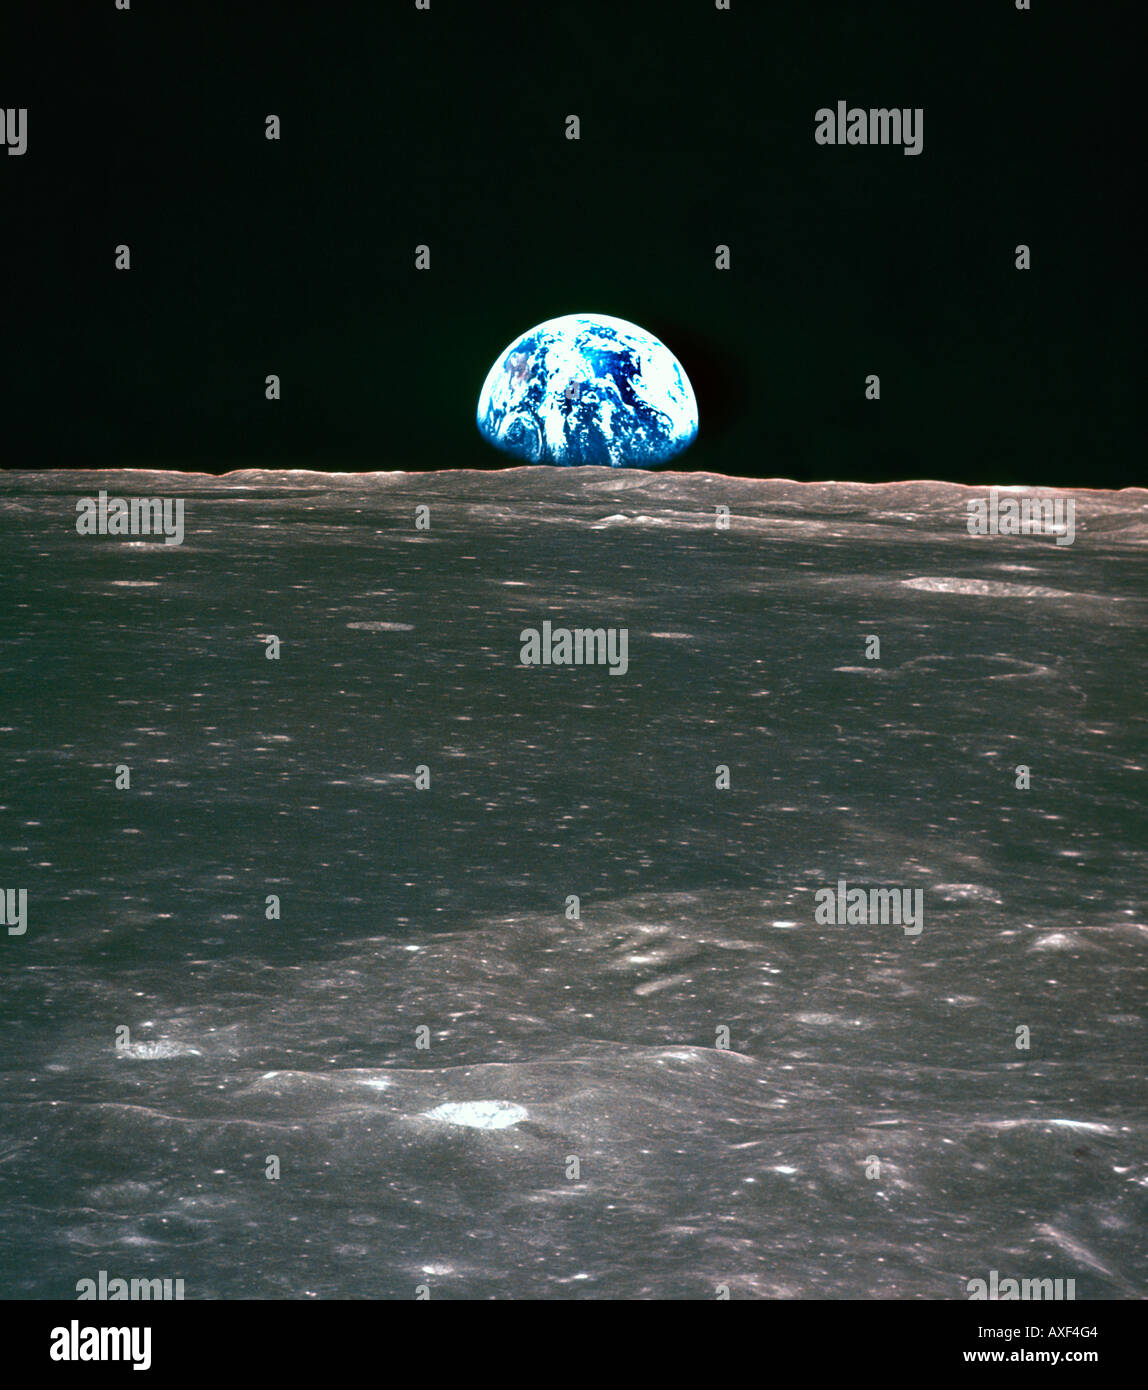 Earth From Moon Stock Photos & Earth From Moon Stock Images